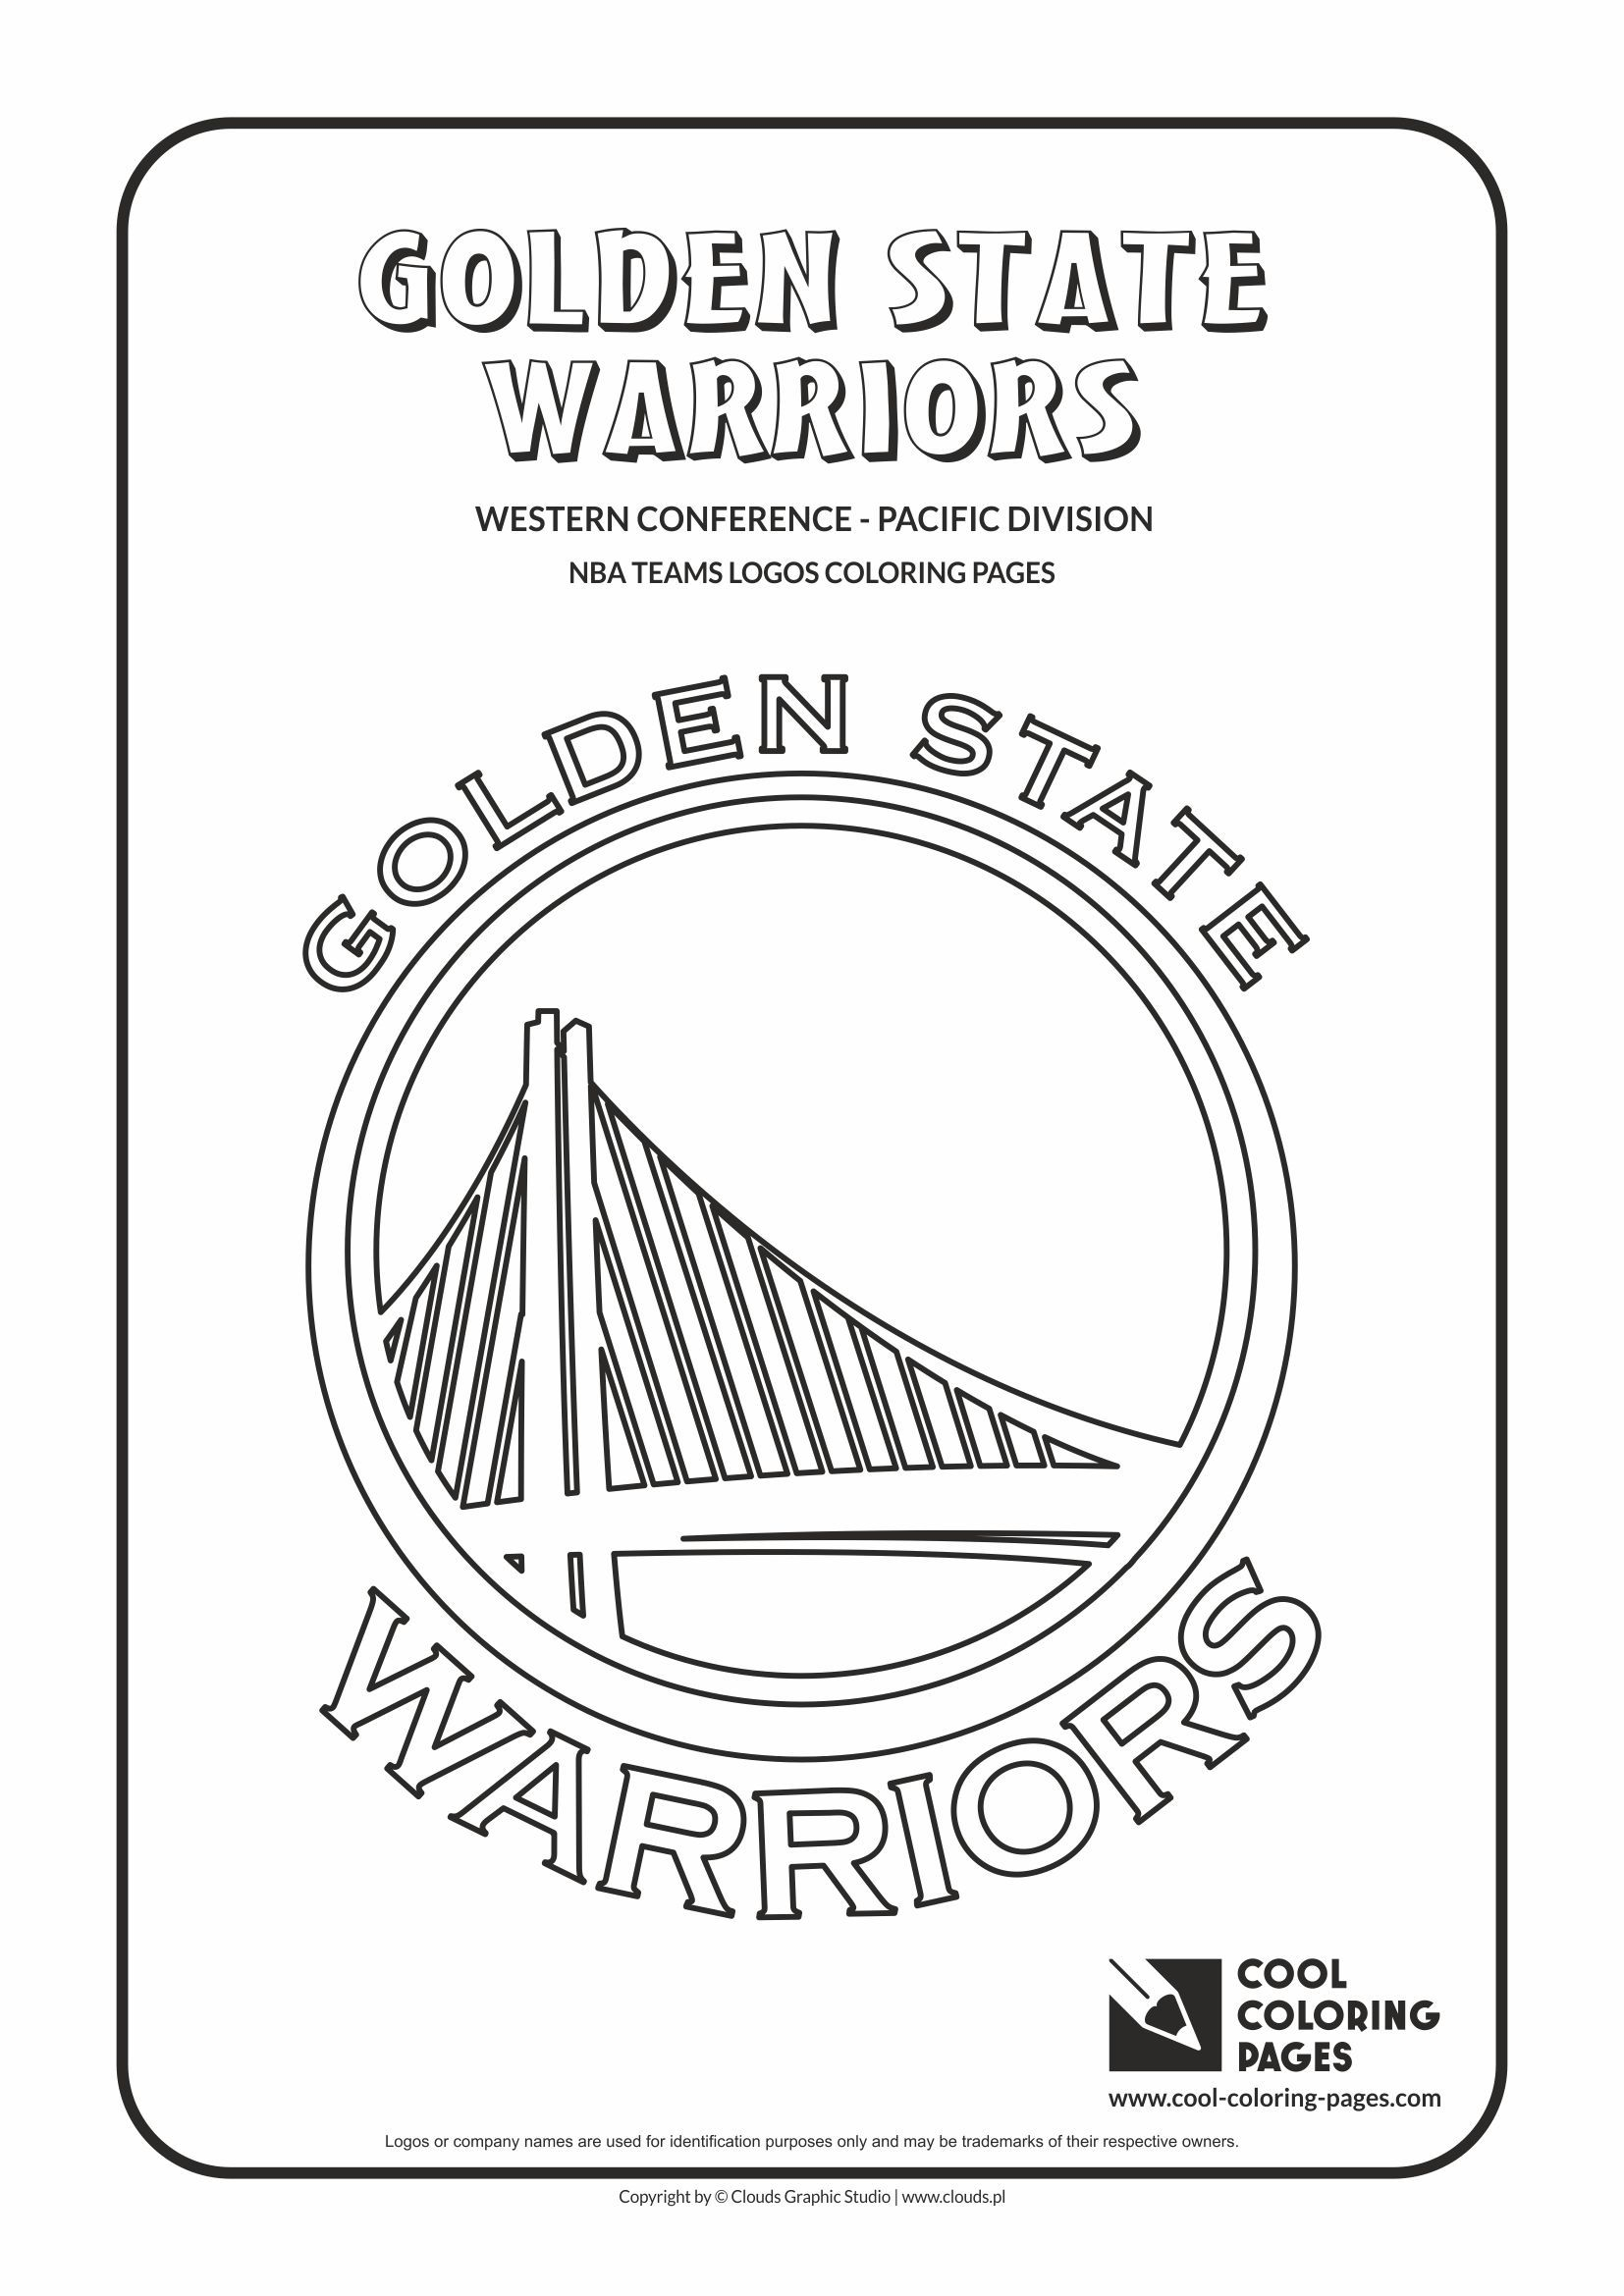 Coloring Pages Nba : Cool coloring pages nba basketball clubs logos western